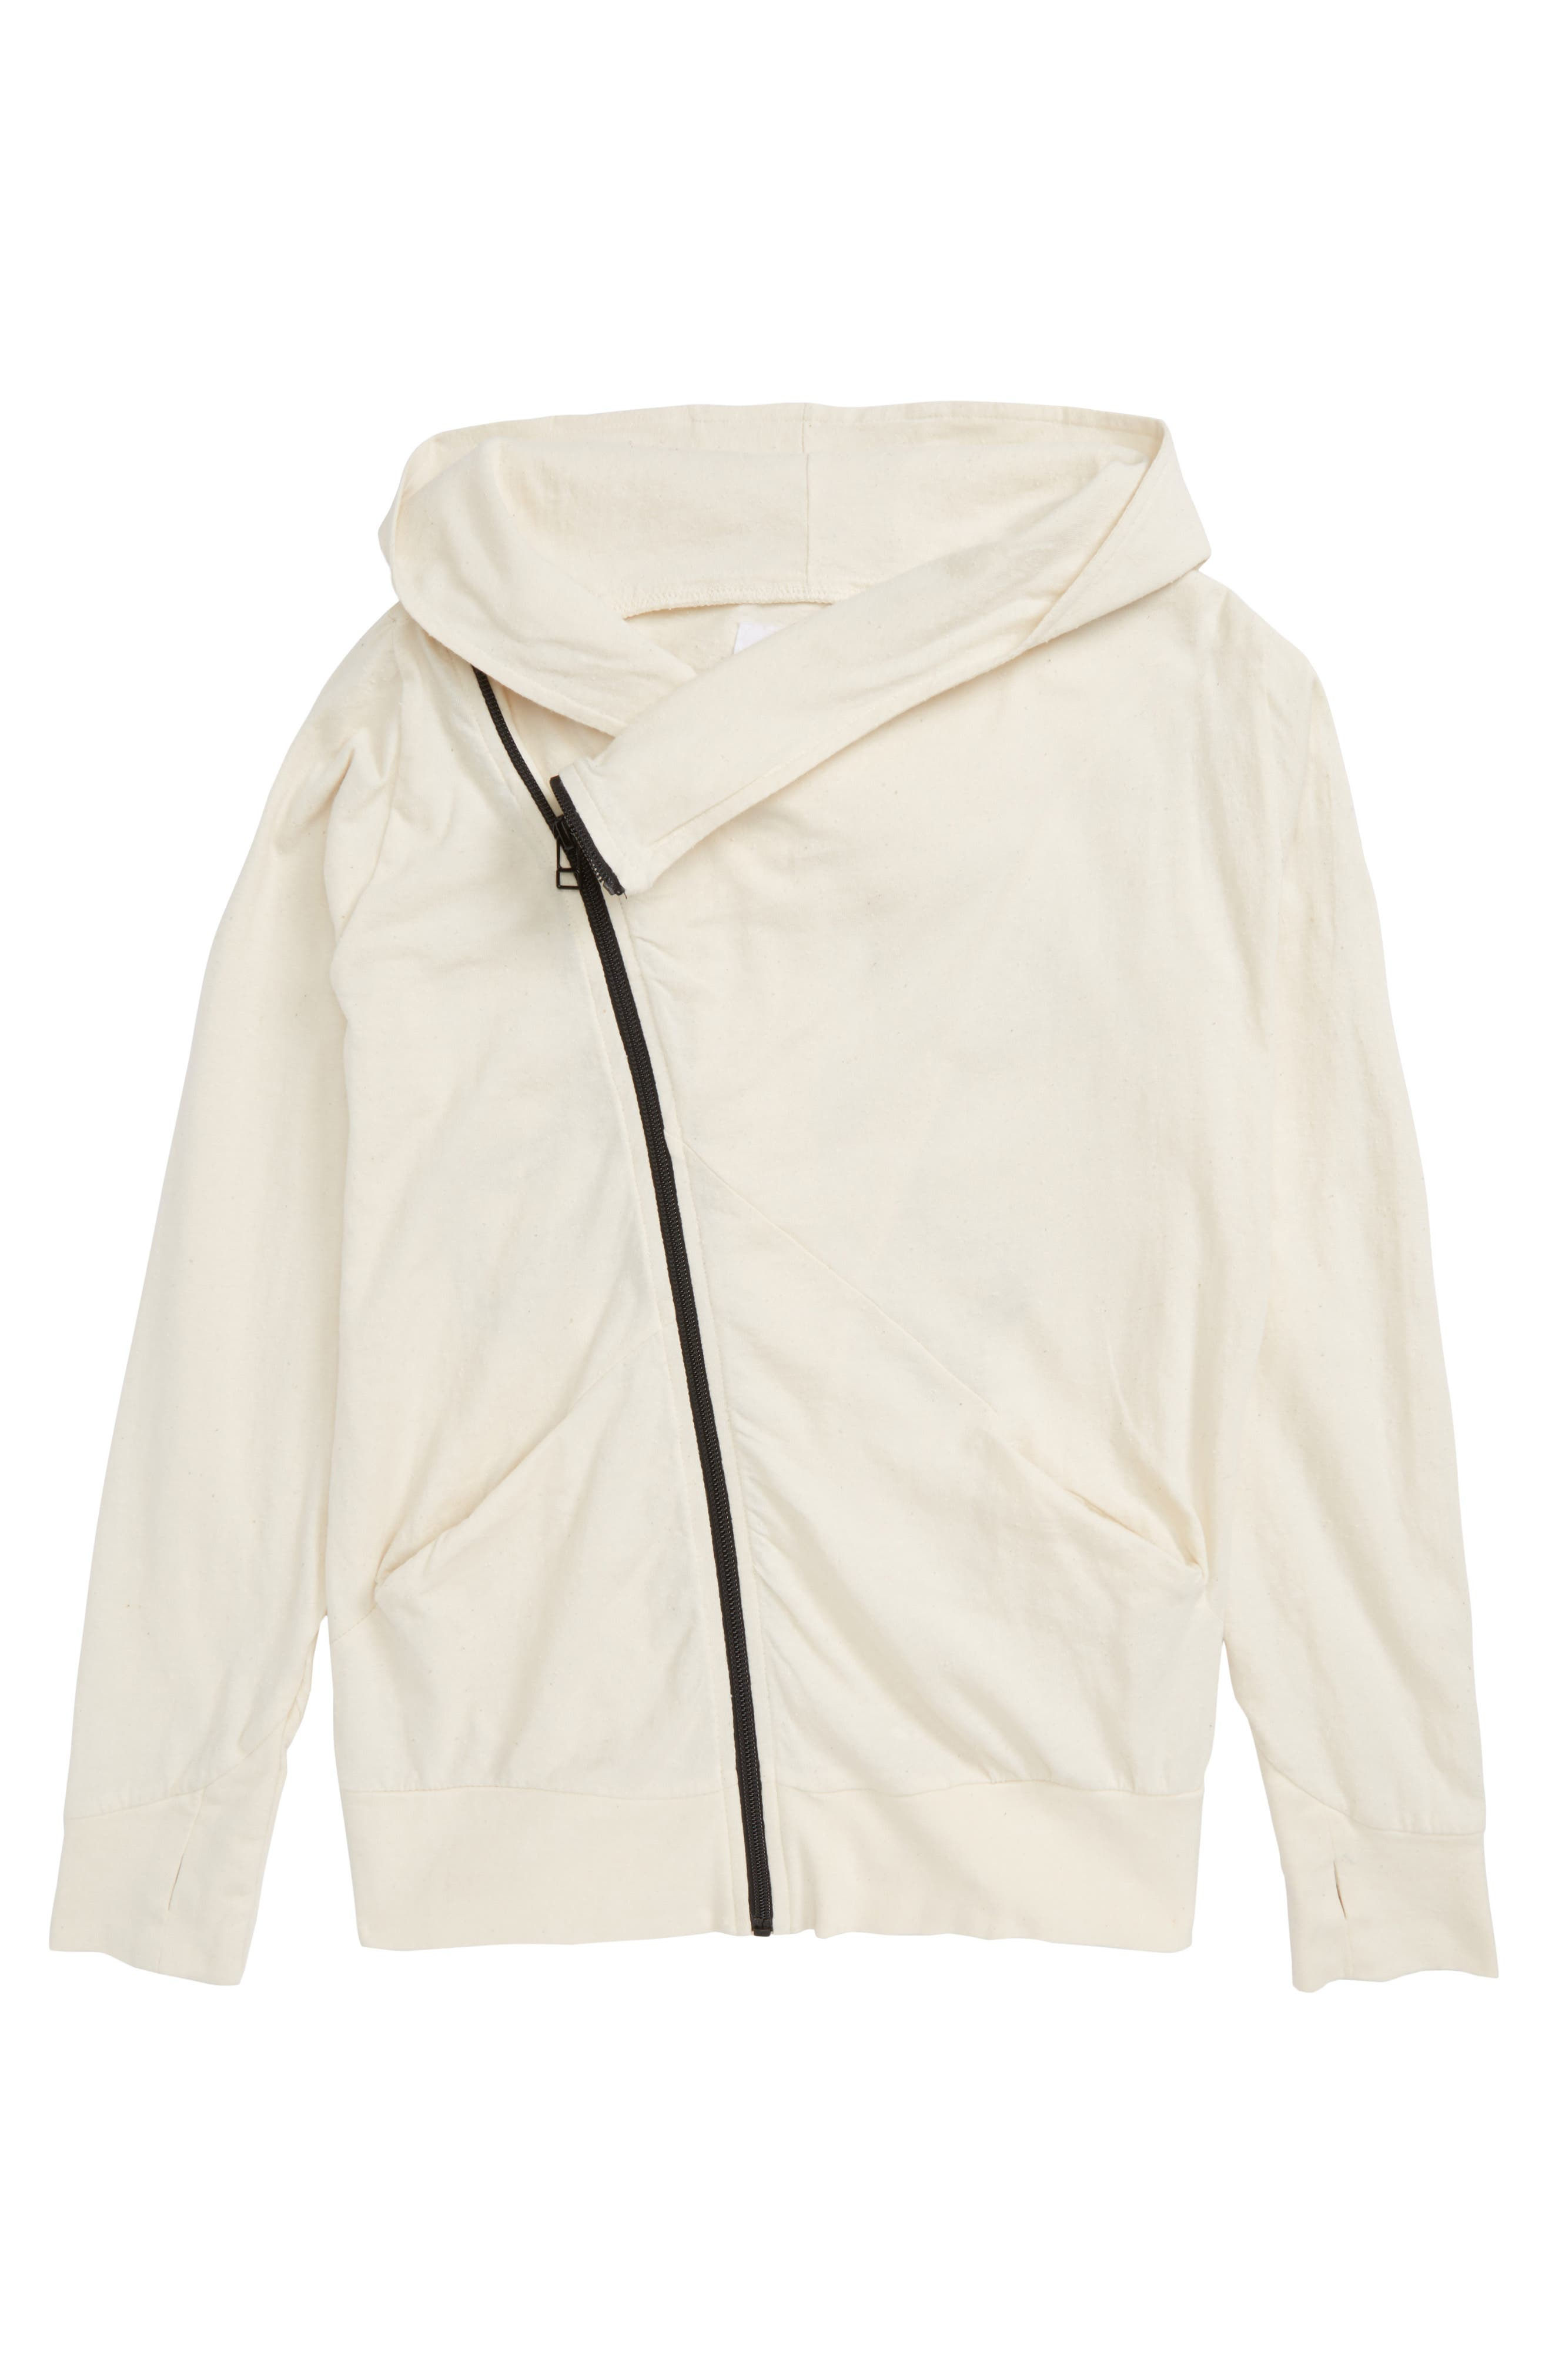 Embroidered Skull Zip Front Hoodie,                             Main thumbnail 1, color,                             White